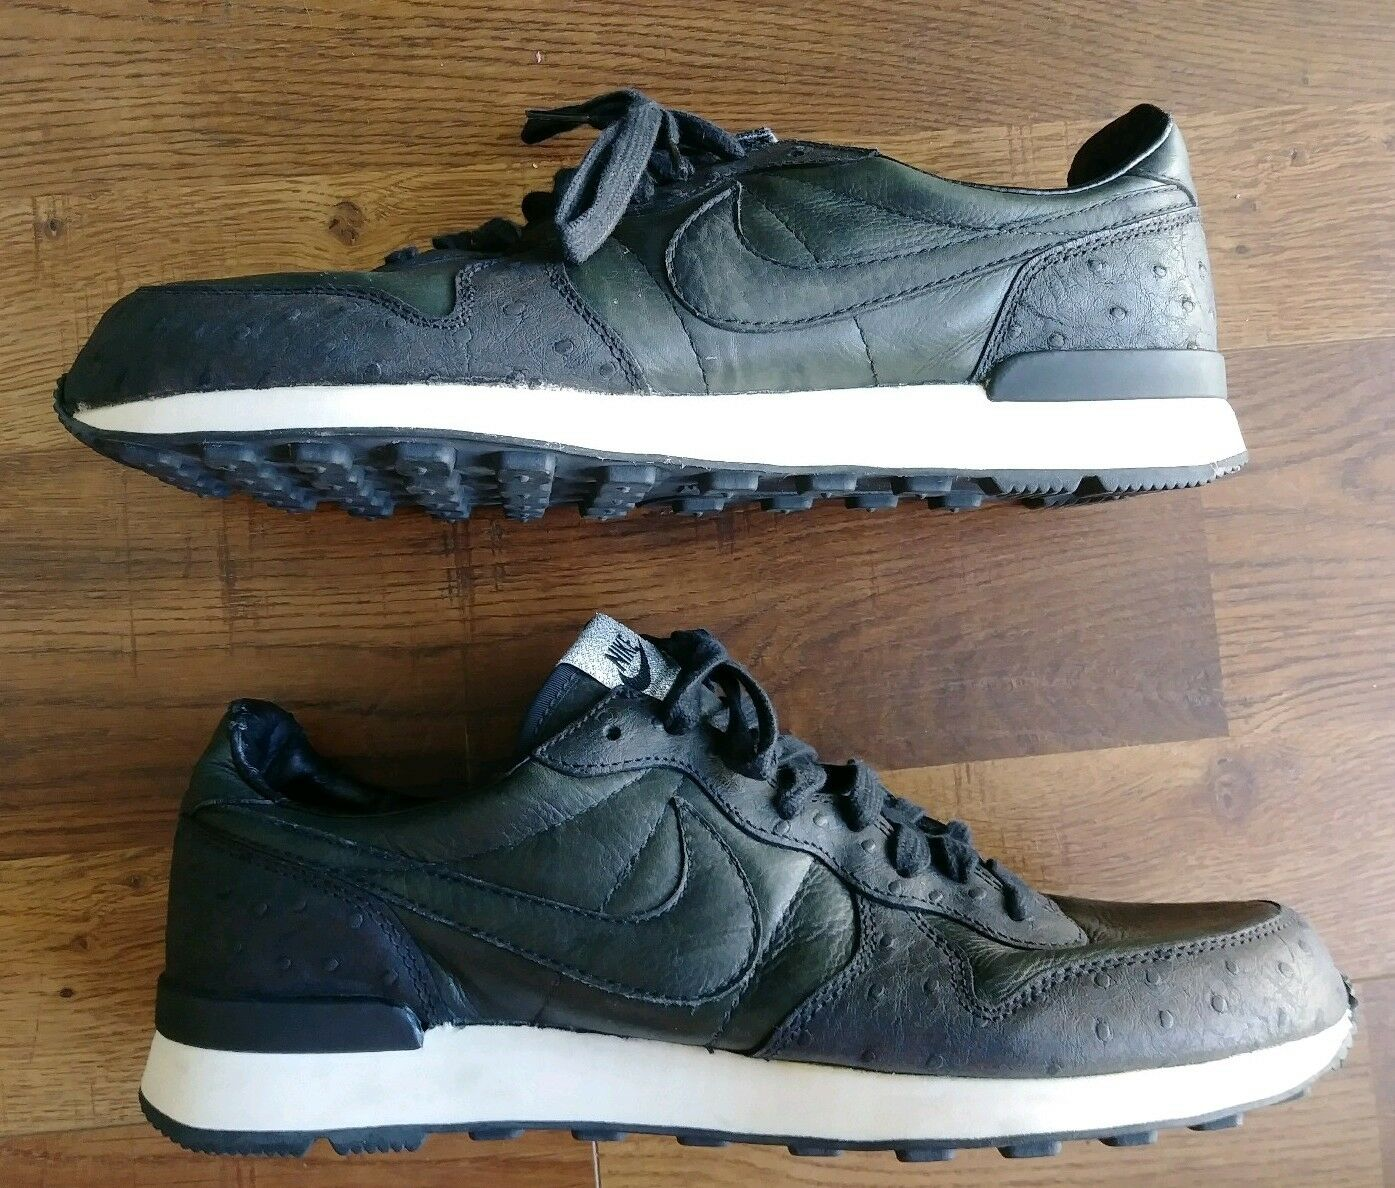 Rare 2004 Nike Dunk Low premium Black Sophnet Edition Japan size 11 310662-001